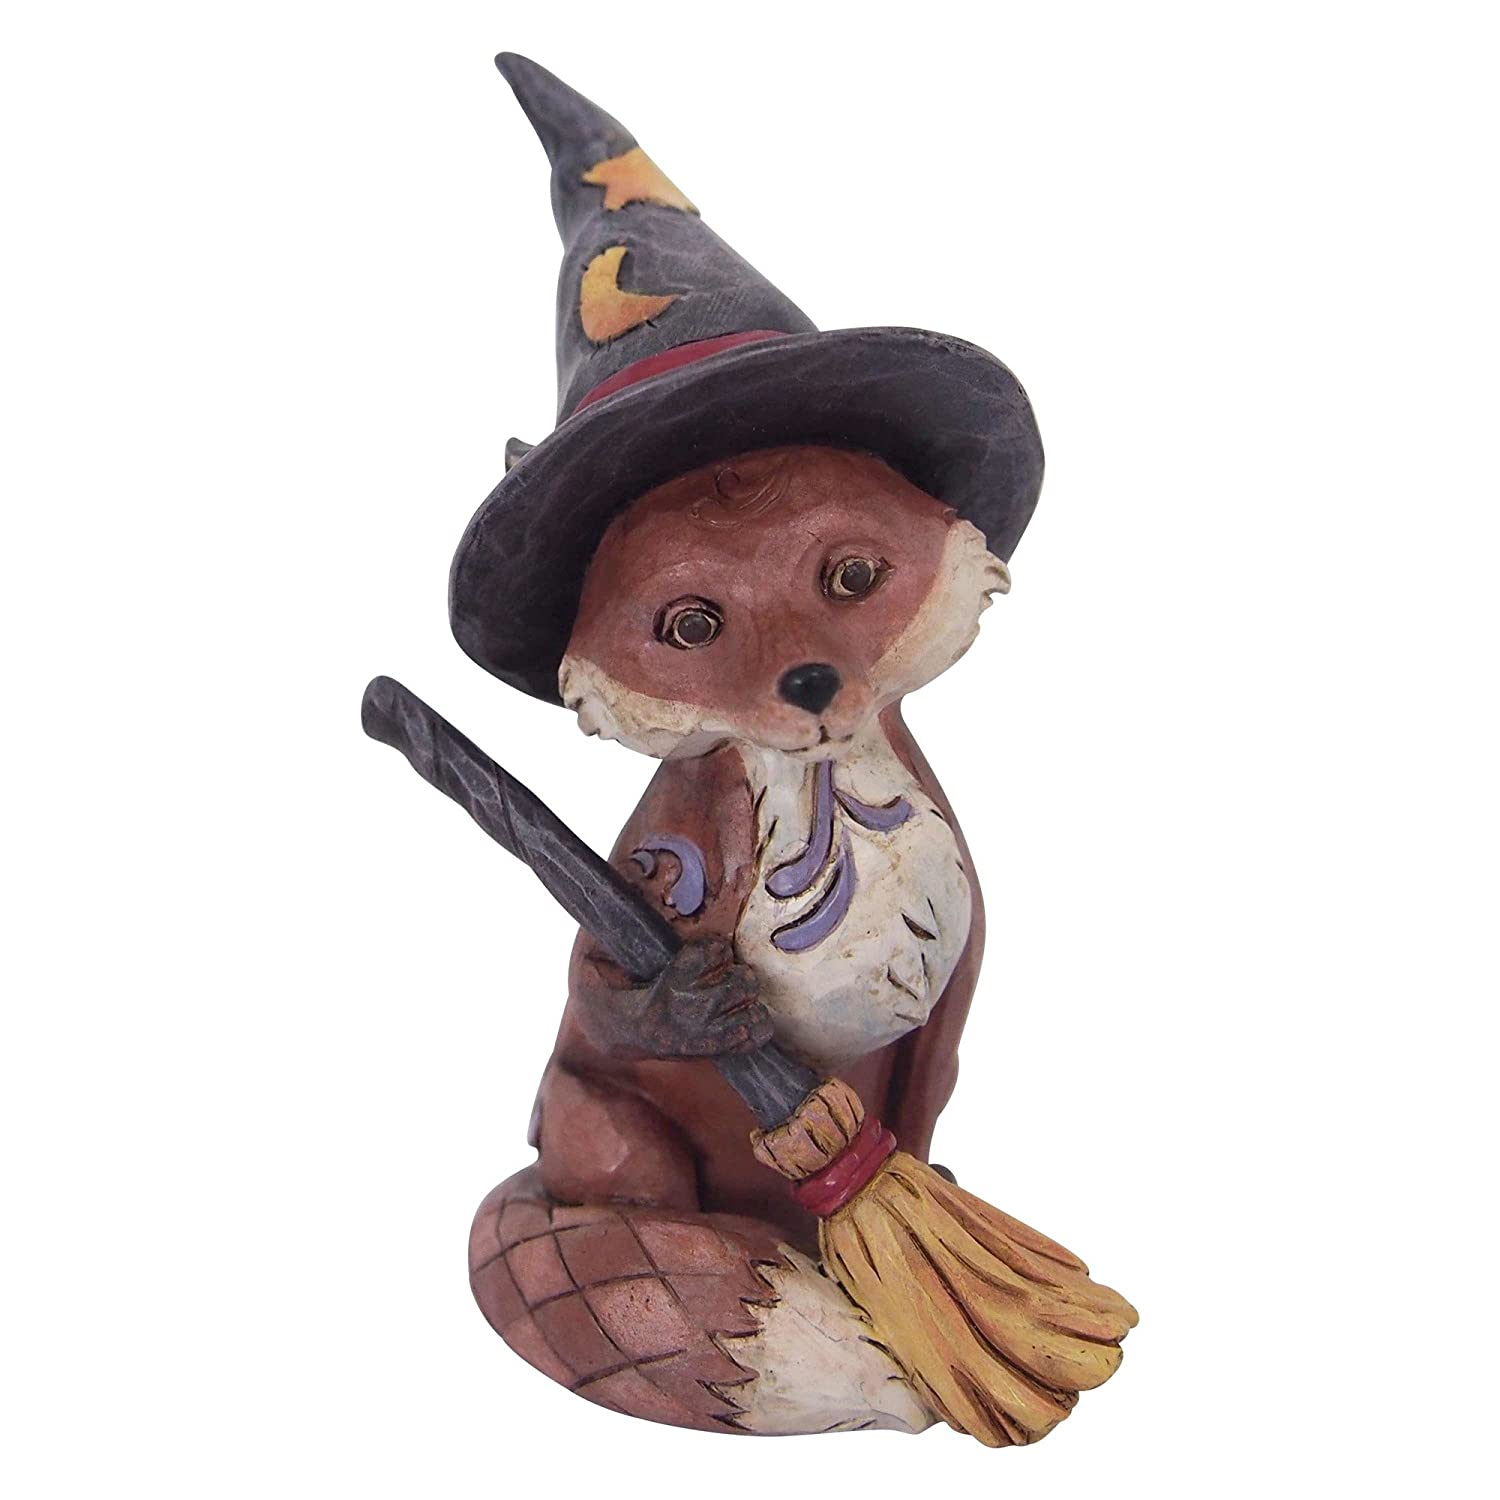 Enesco Jim Shore Heartwood Creek Halloween Figurine design with fox